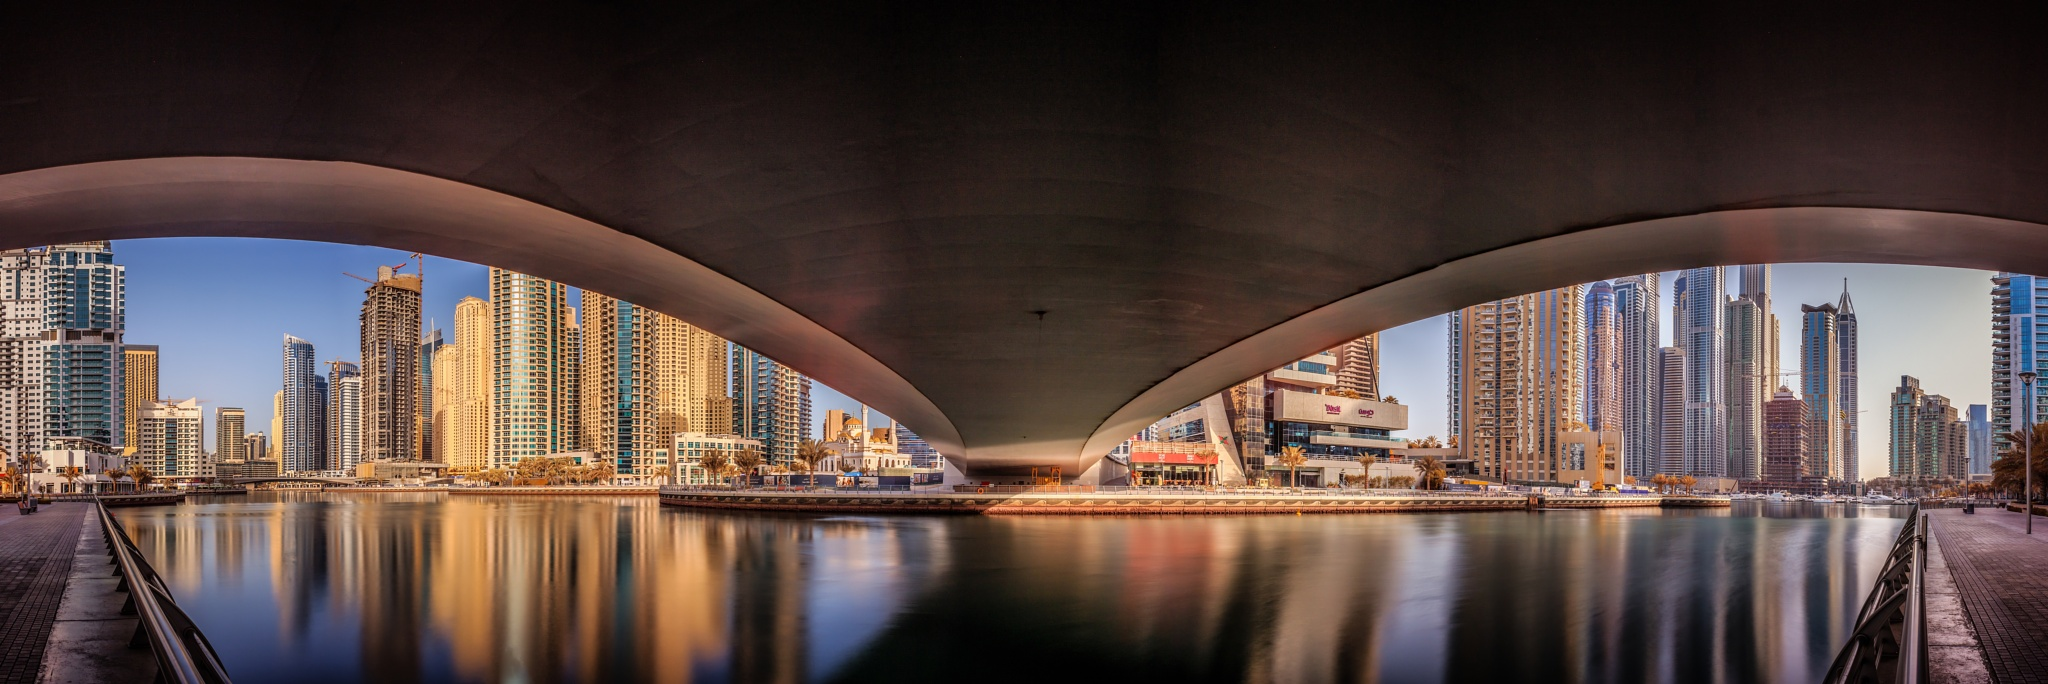 Under the Bridge by Mohammed Shamaa